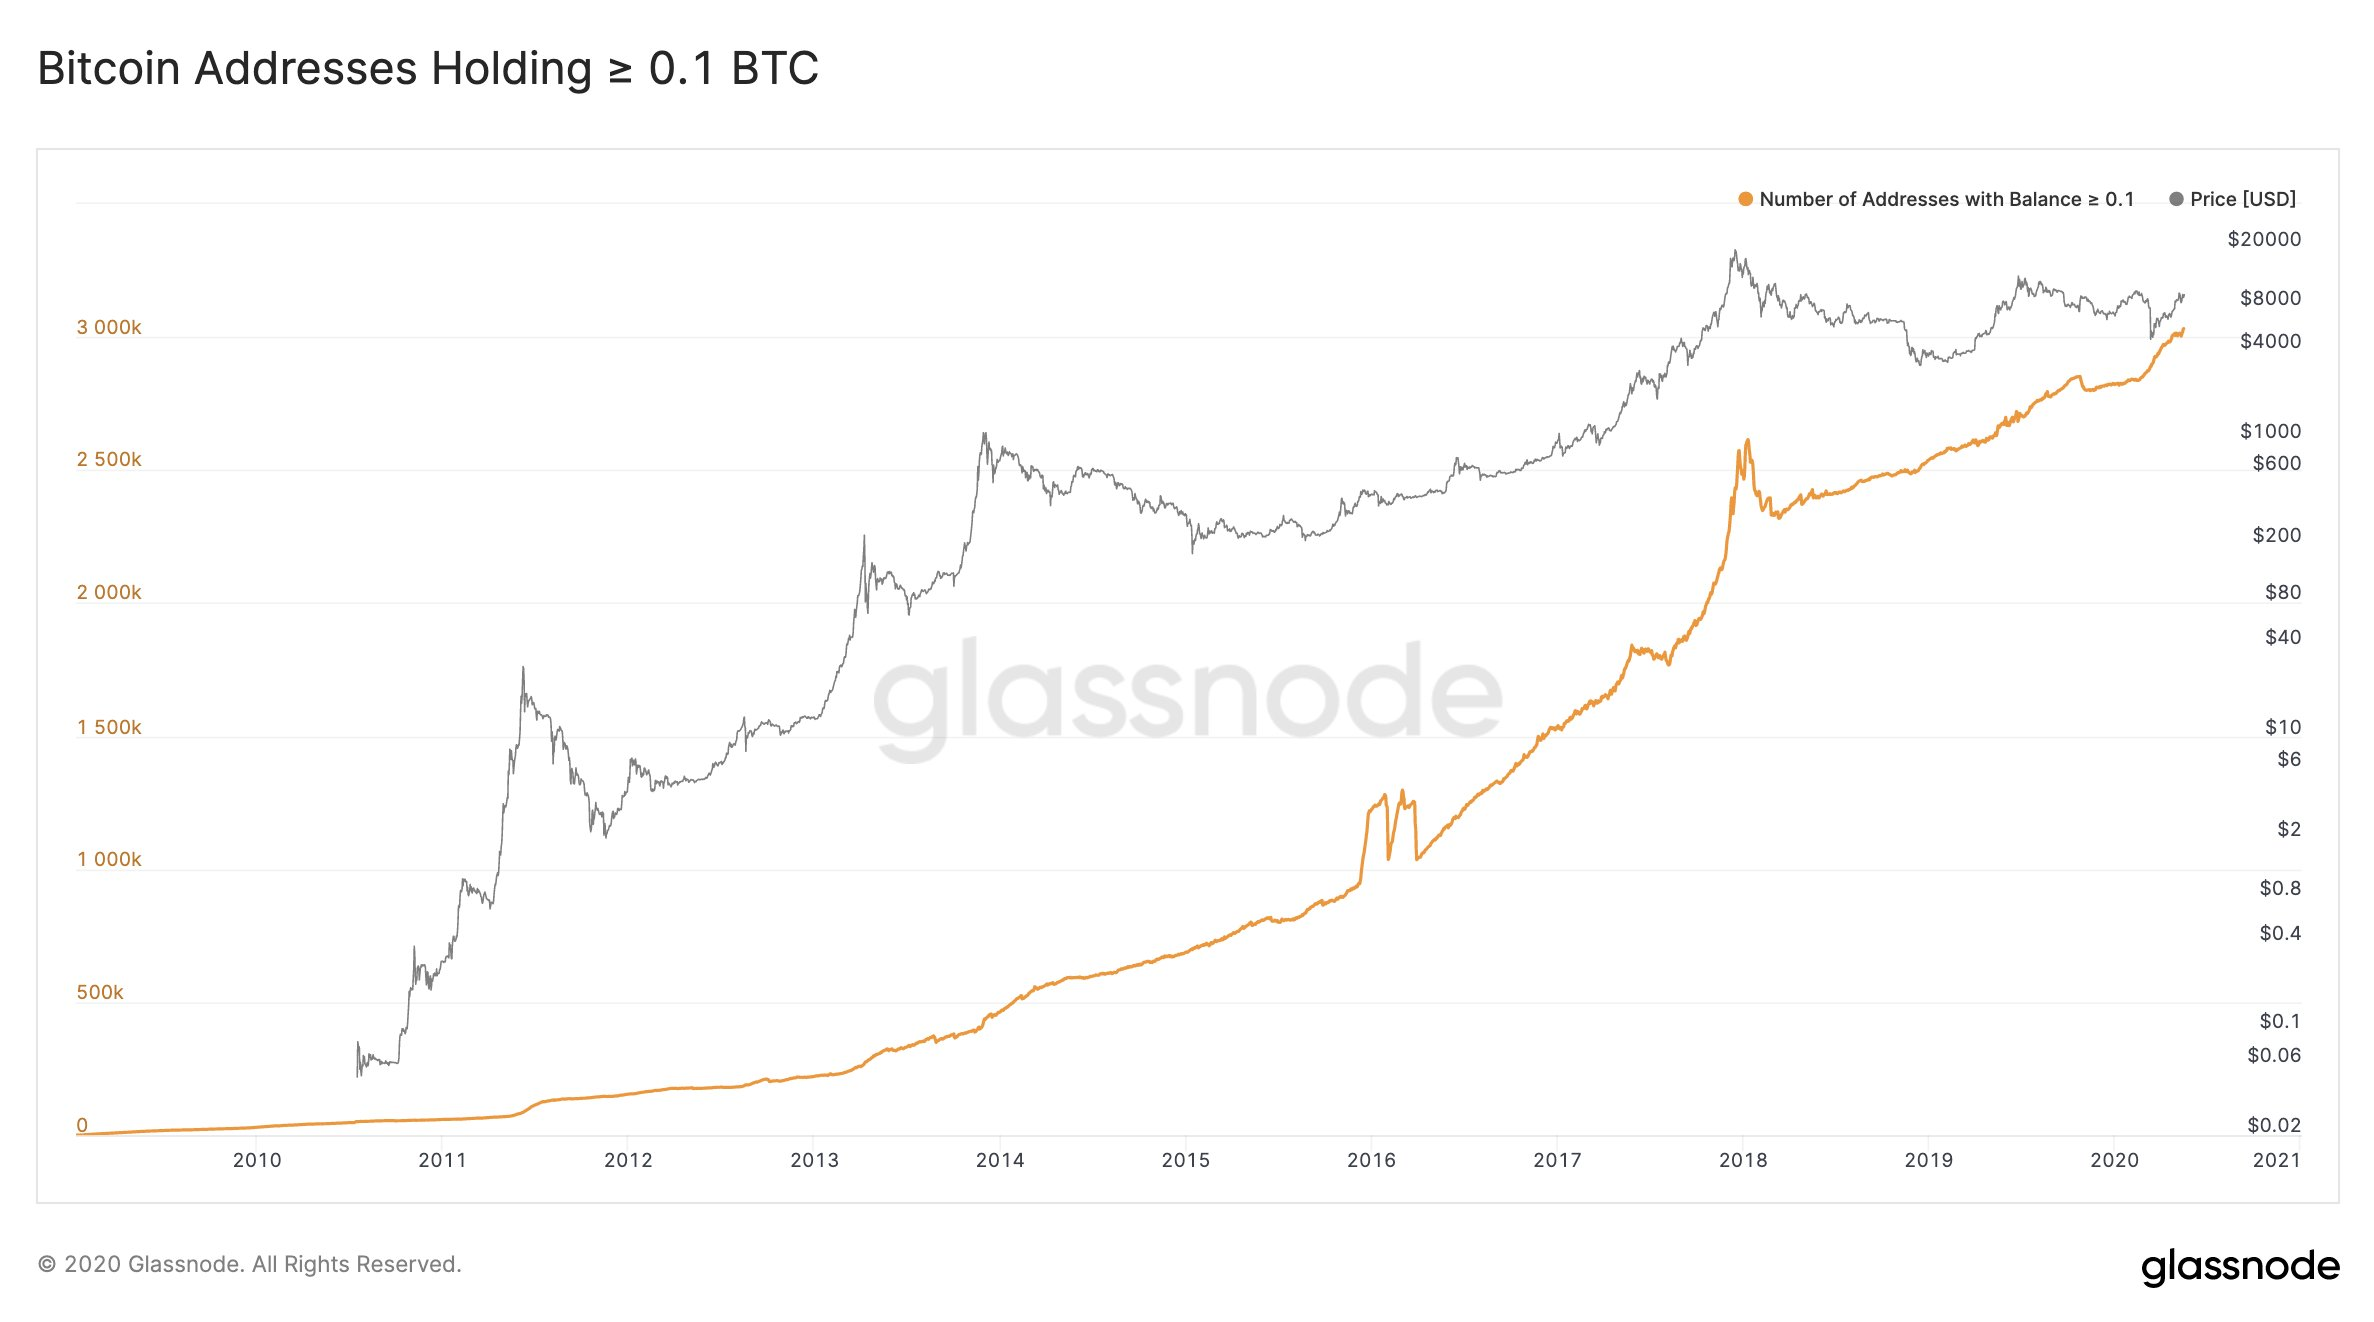 Bitcoin Addresses Holding 0.1 BTC by Galssnode